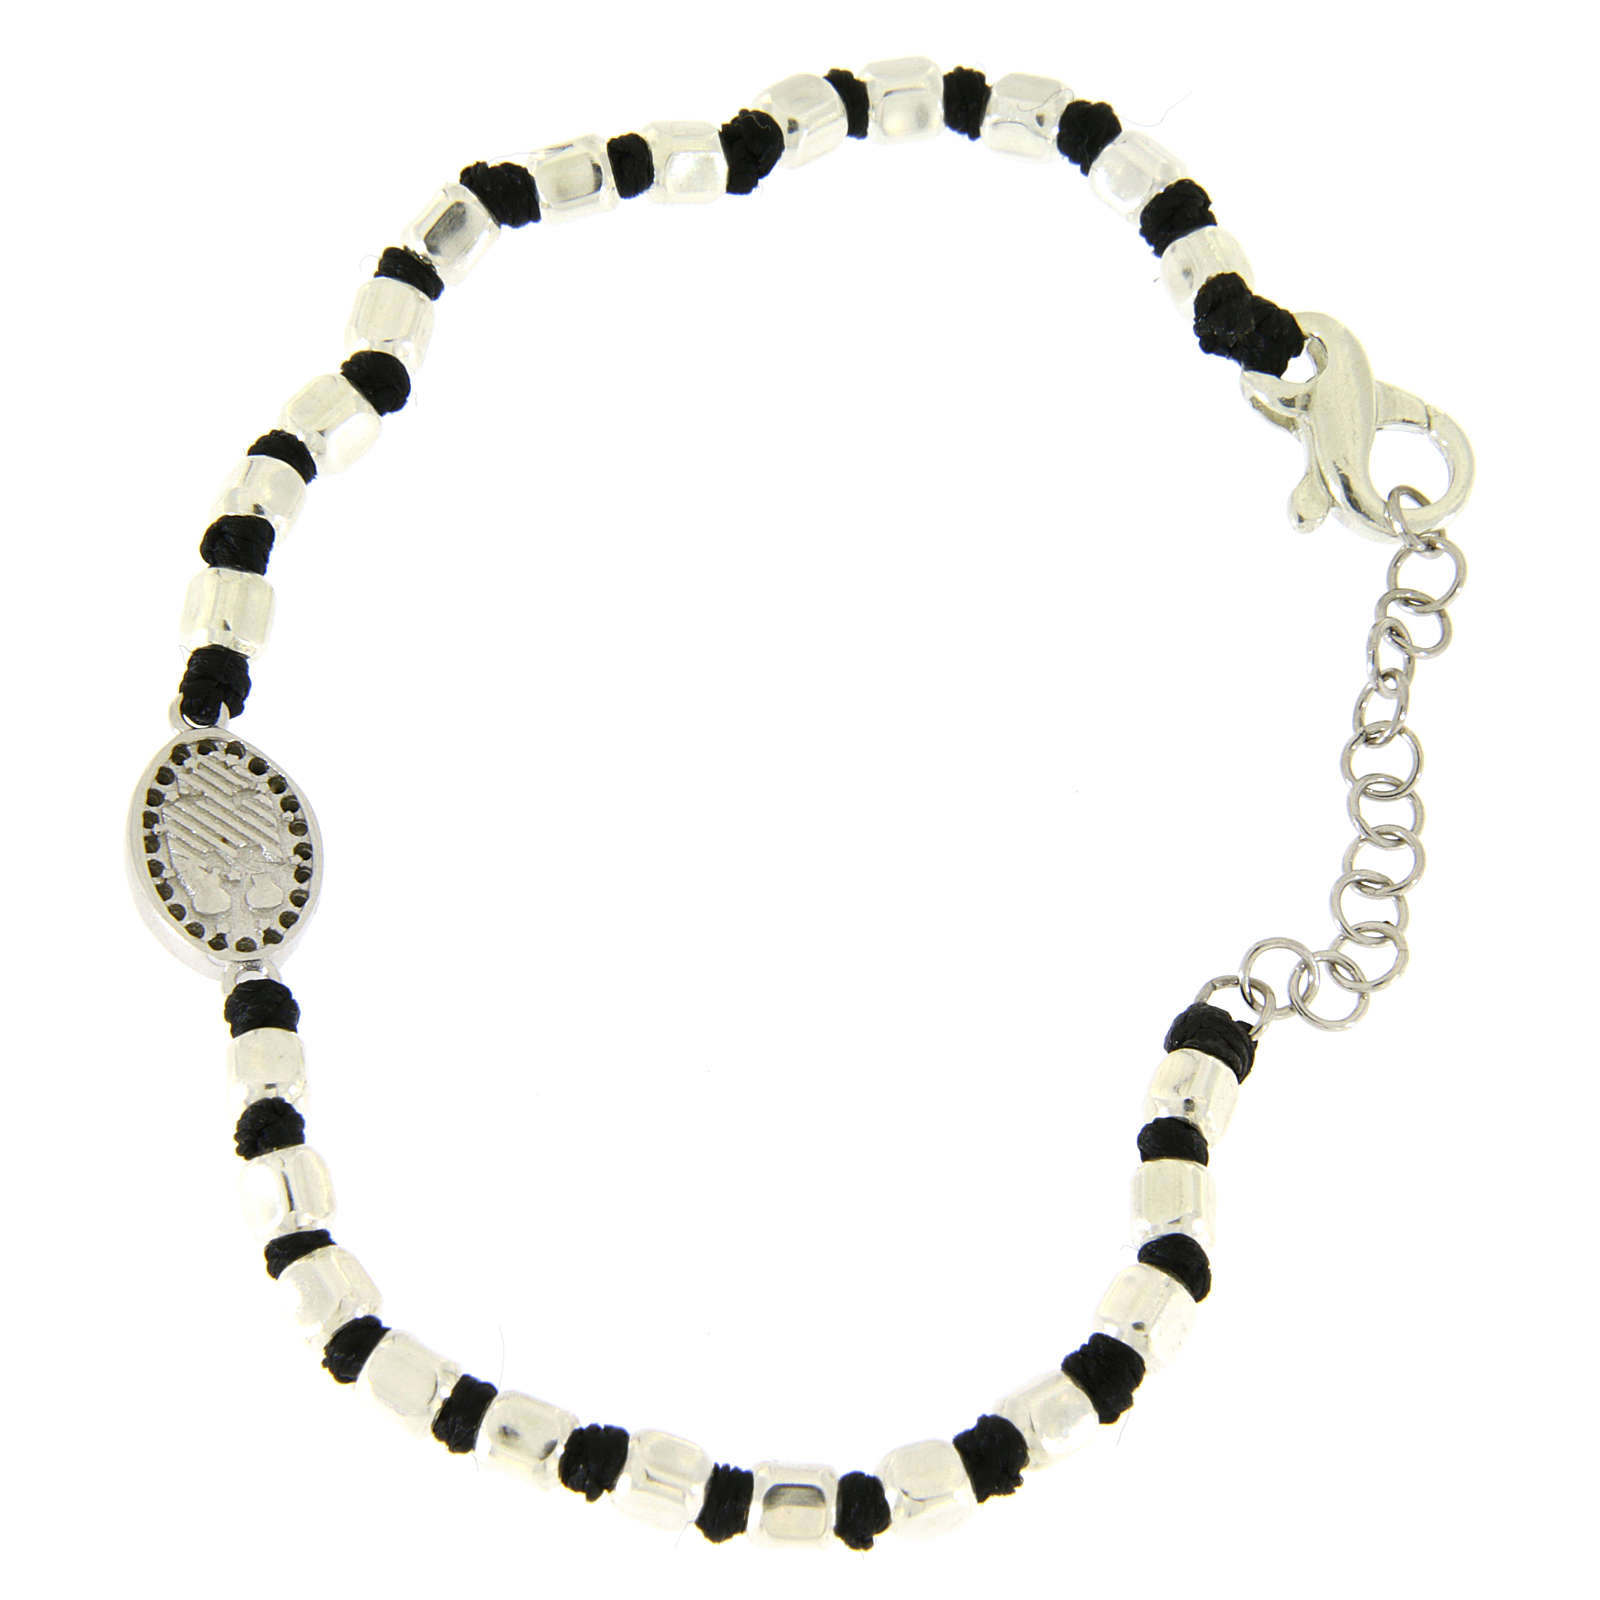 Bracelet with silver beads sized 2 mm on a black cotton cord and a black zirconate Saint Rita medalet 4